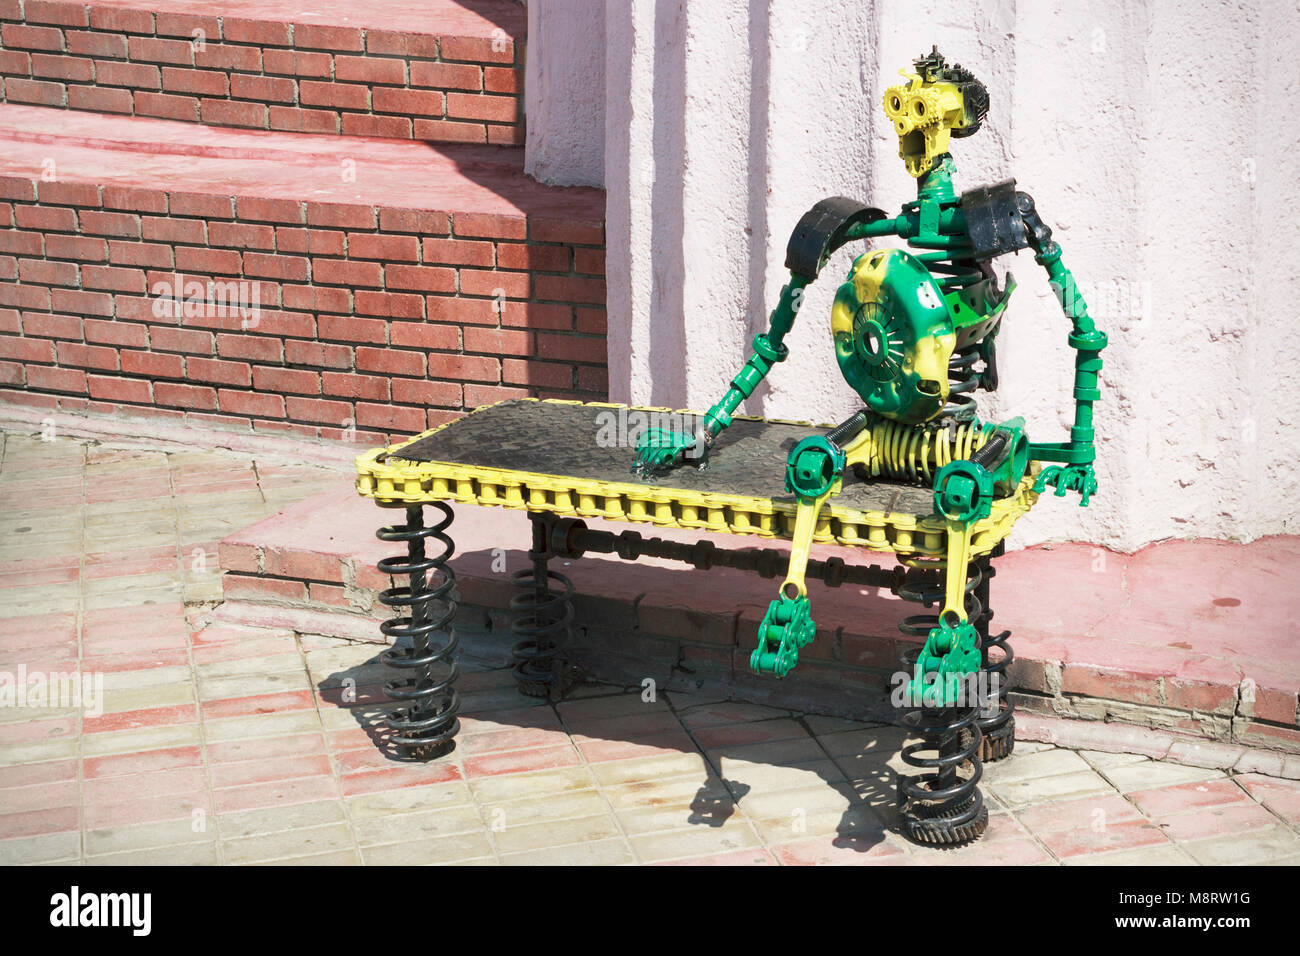 The figure of a man made out of car parts Stock Photo